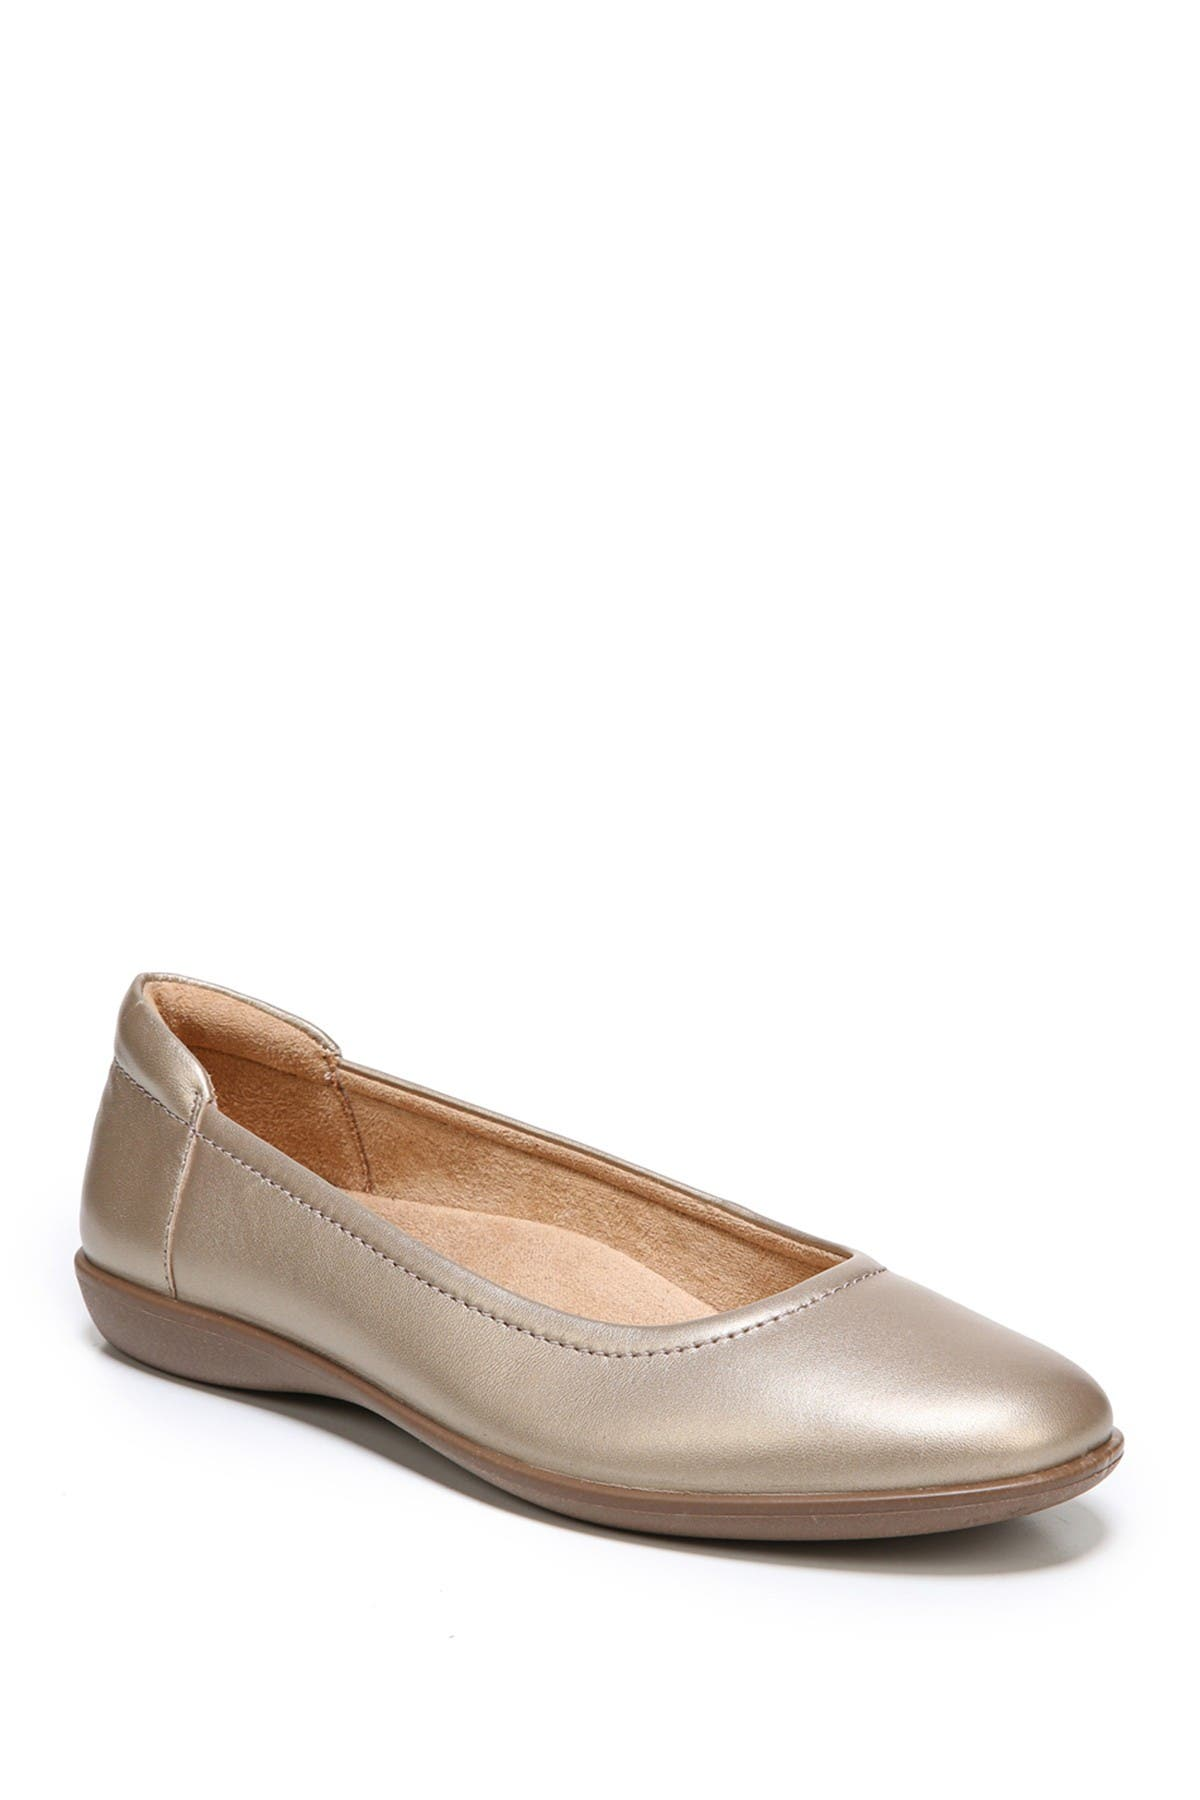 Naturalizer | Flexy Leather Flat - Wide